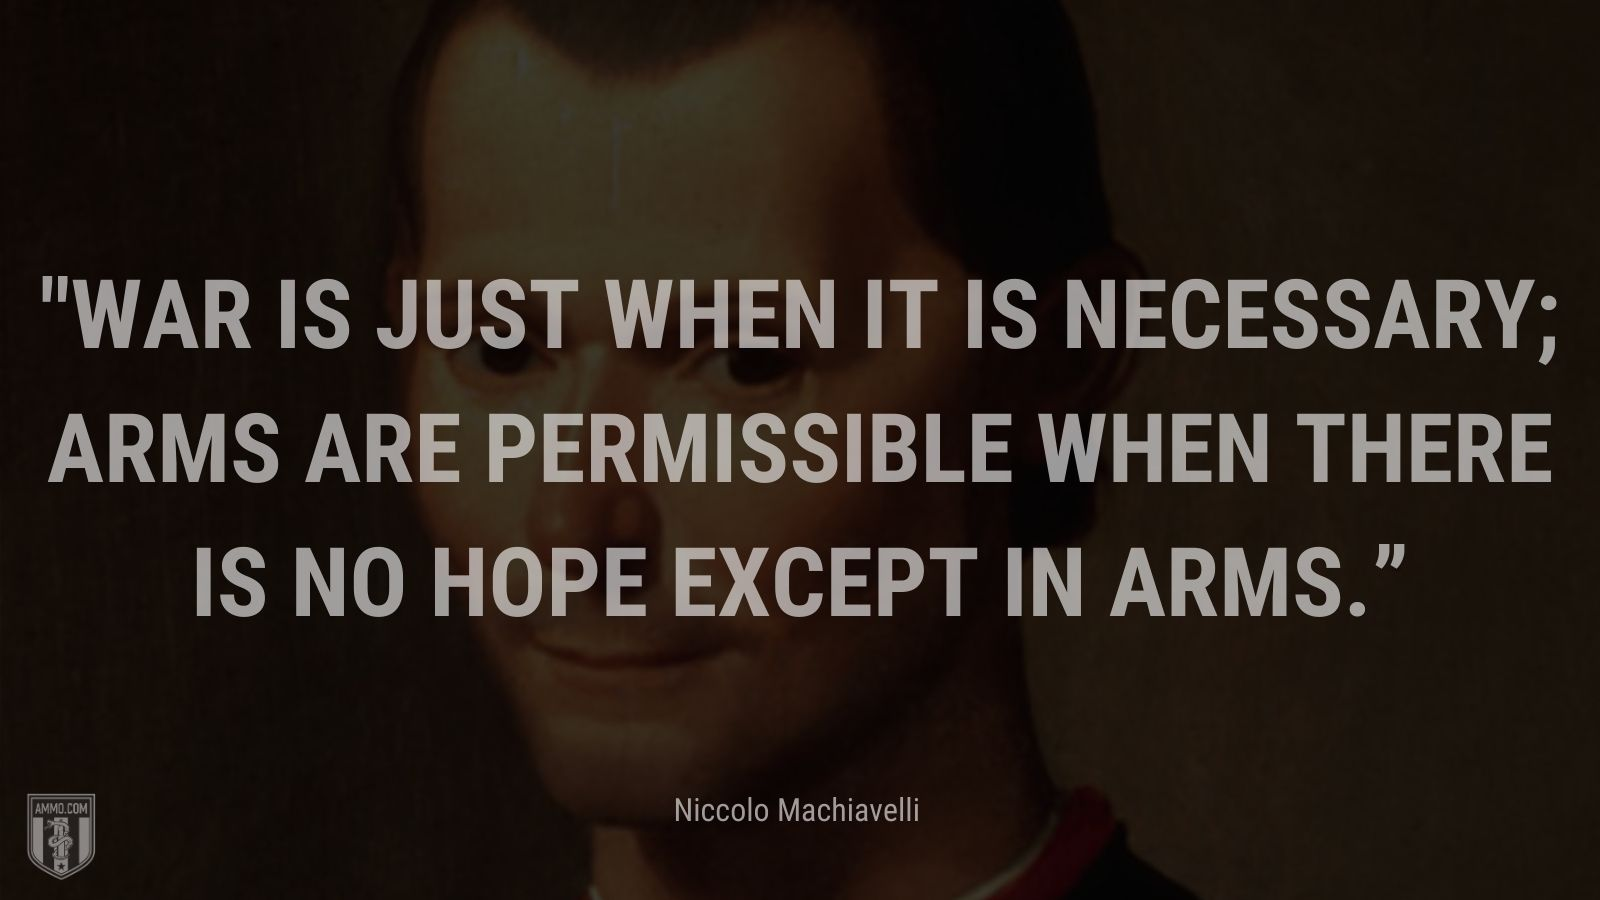 """""""War is just when it is necessary; arms are permissible when there is no hope except in arms."""" - Niccolo Machiavelli"""